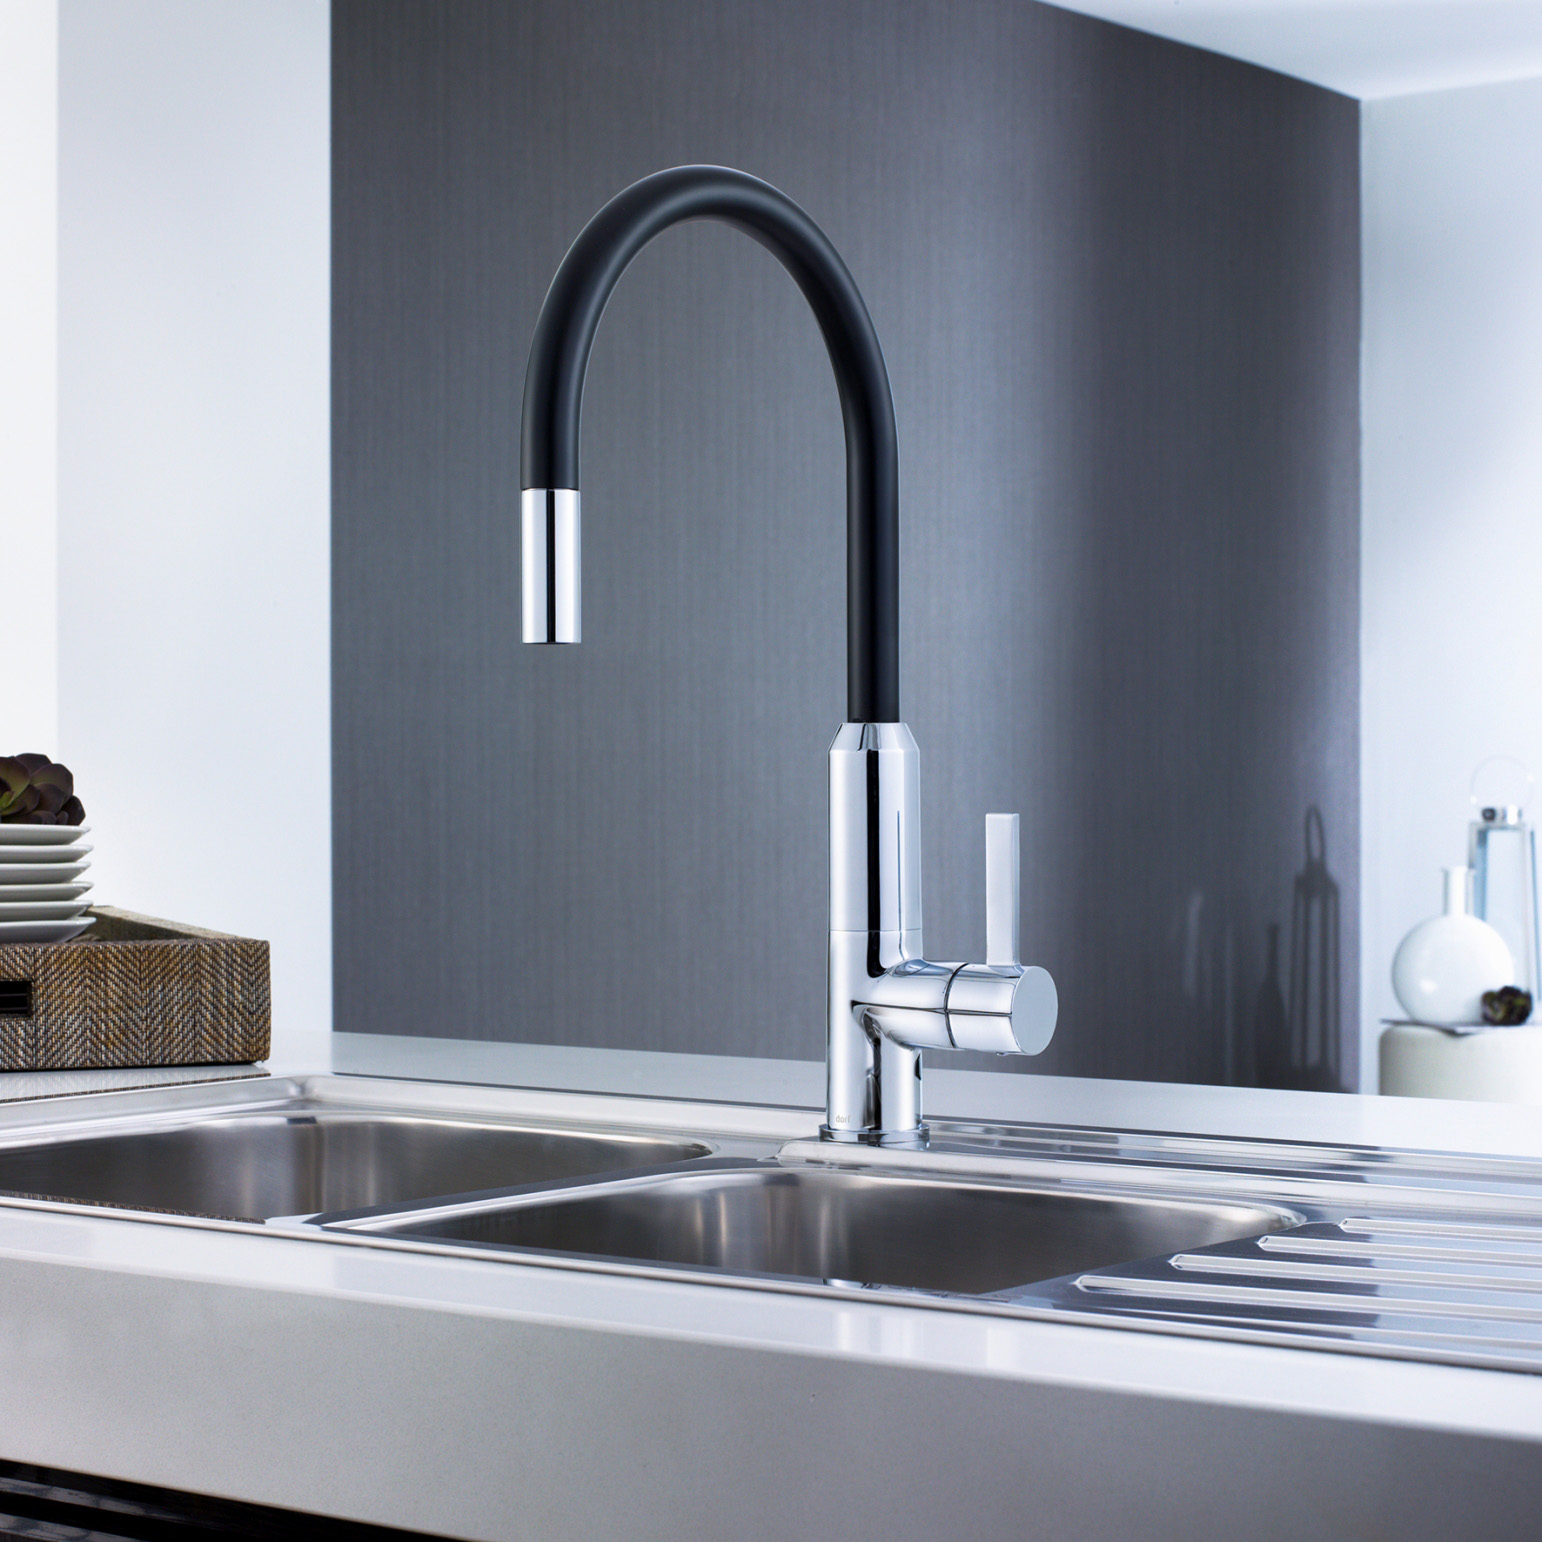 Dorf S New Sink Mixers The Kitchen And Bathroom Blog